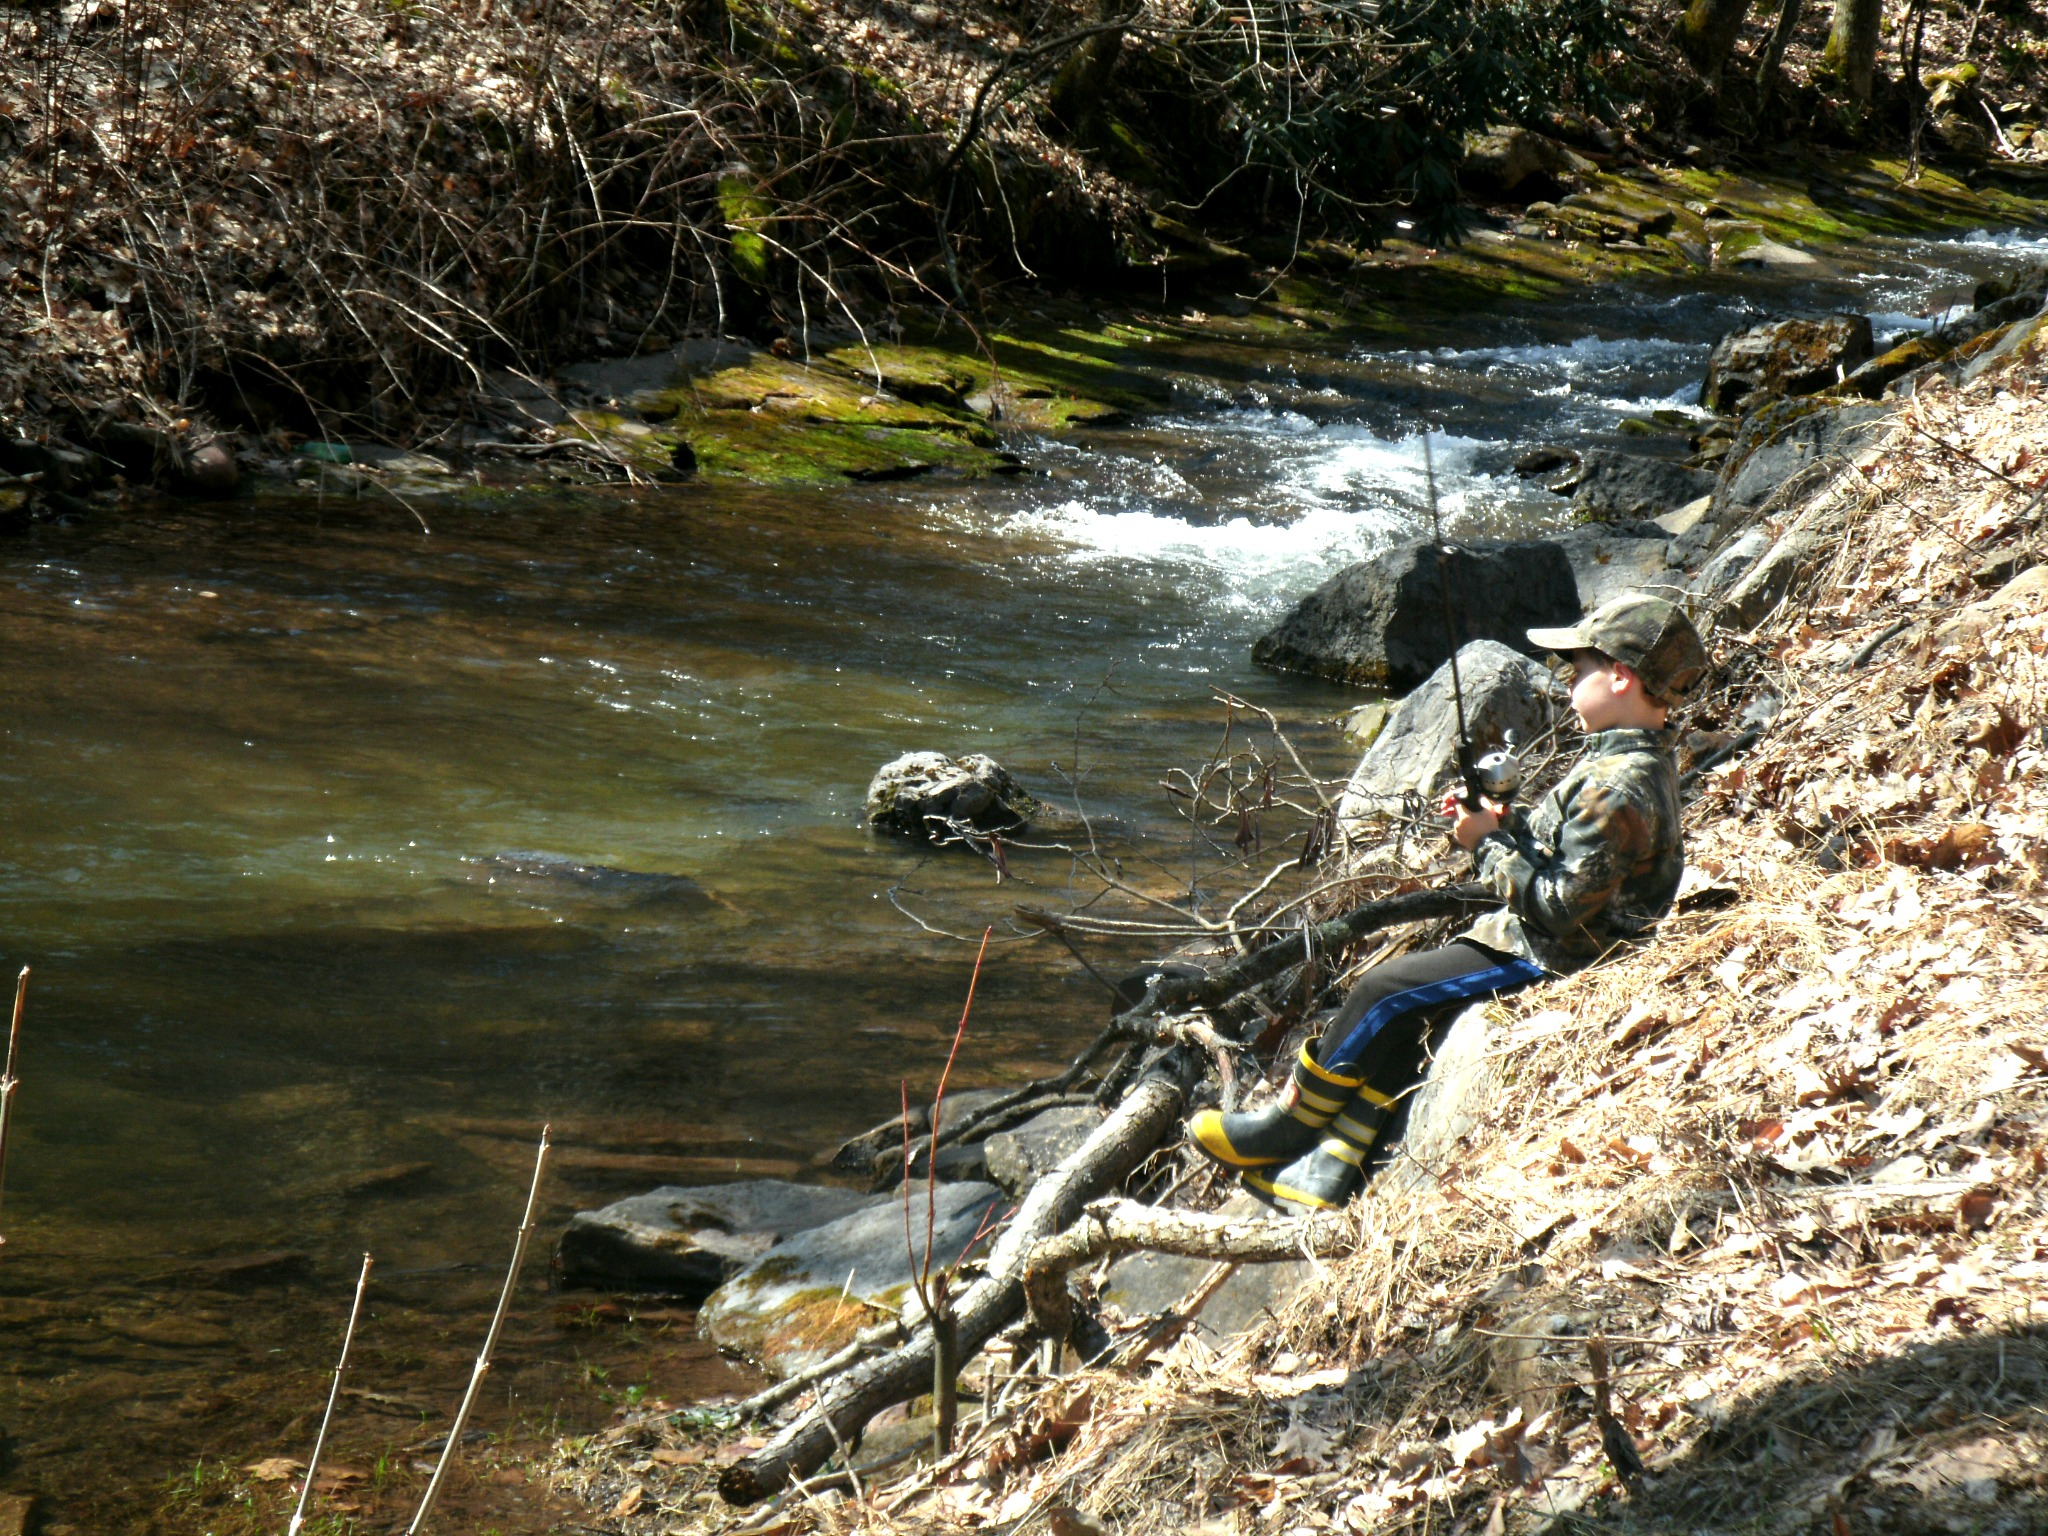 Spring time in west virginia means trout and a trip to for Trout fishing in wv